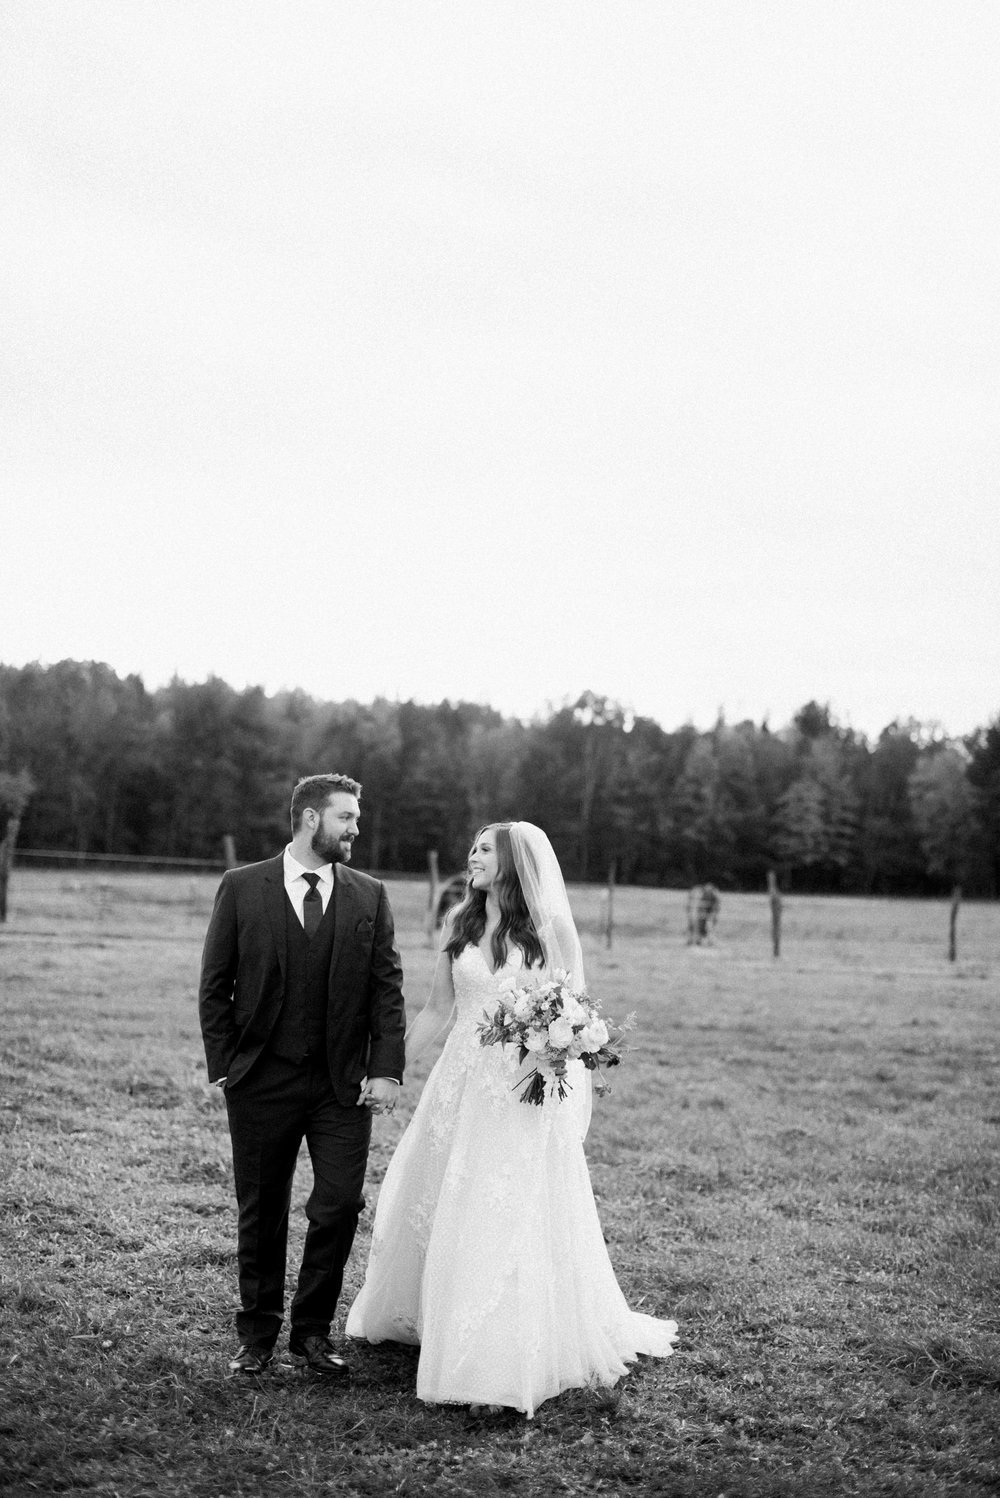 Light and Airy photography in Northampton MA